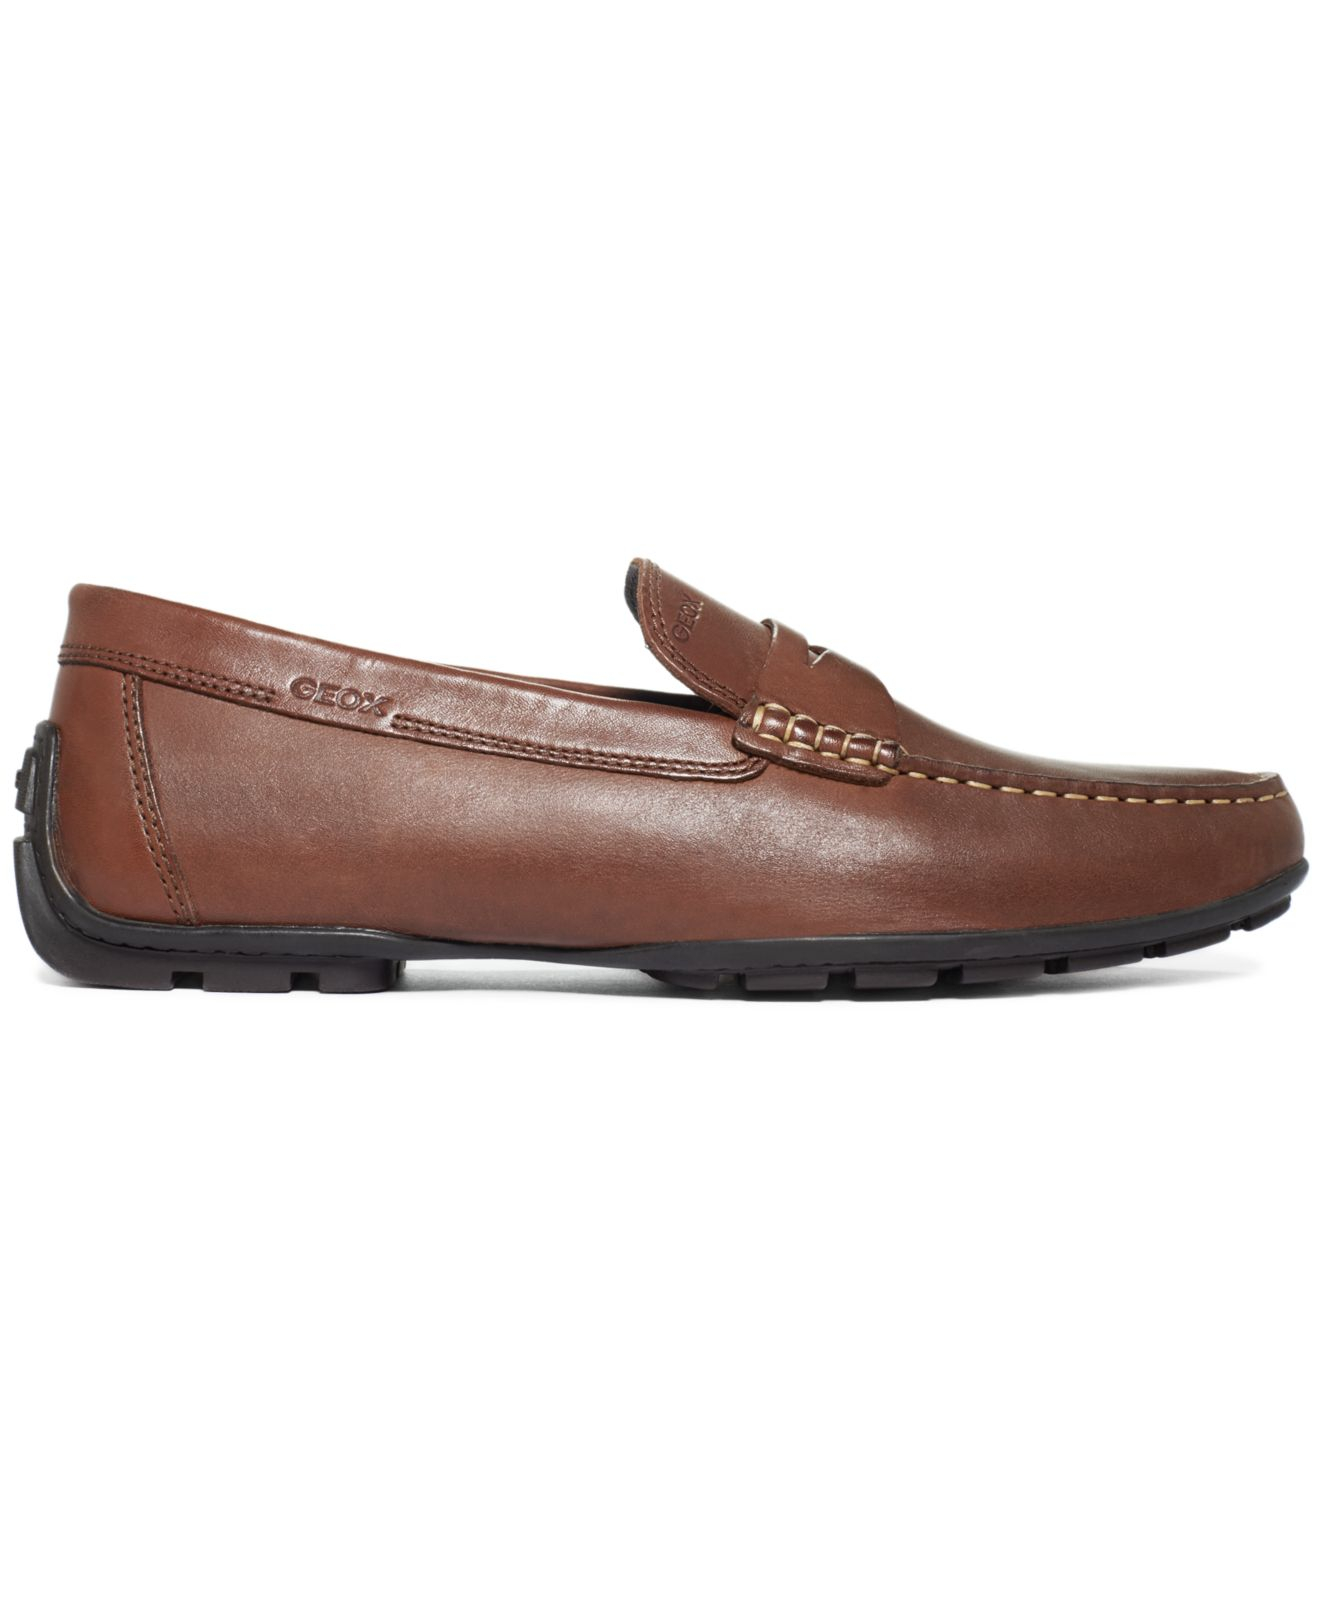 In For Loafers Geox Penny Monet Lyst Men Brown 2IE9DH